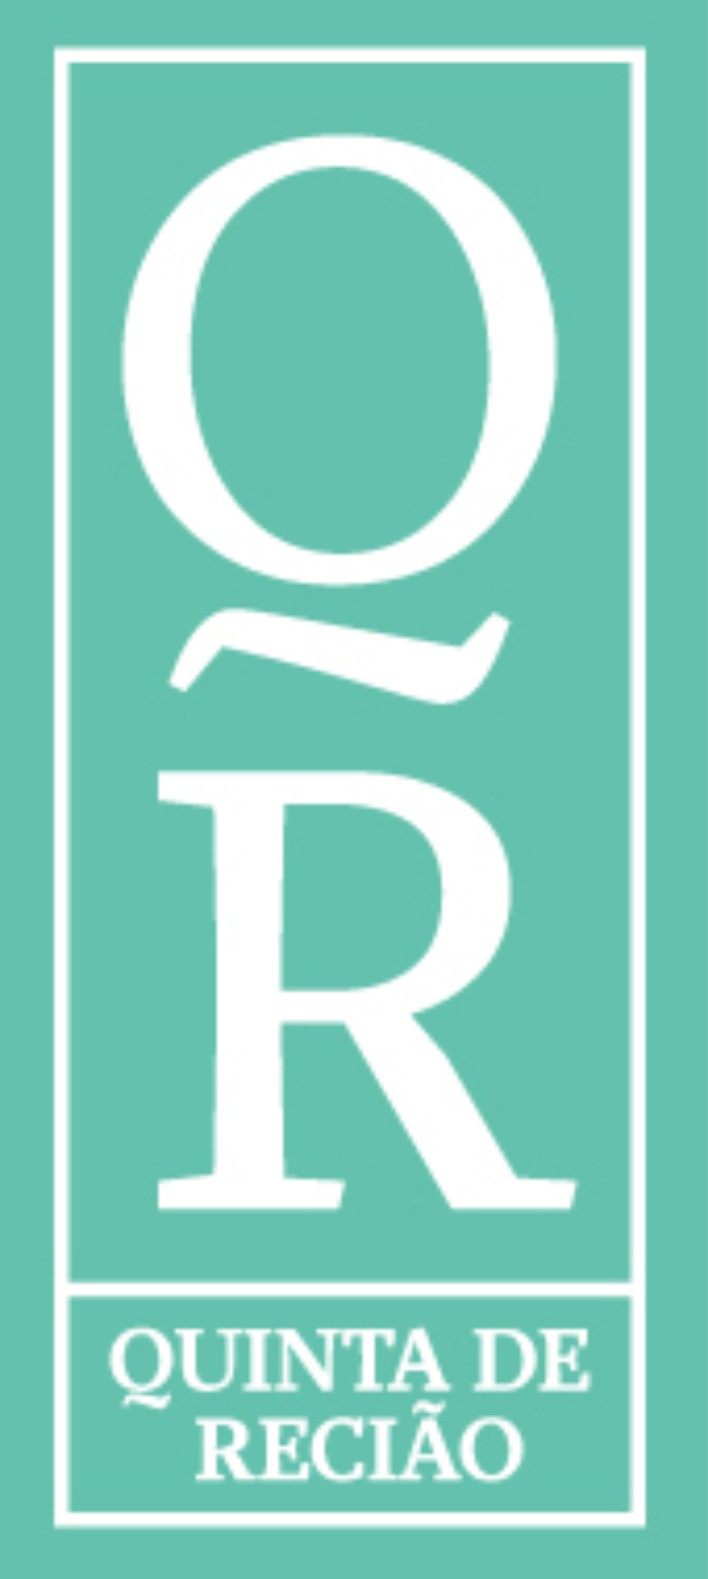 RECIÃO LOGO